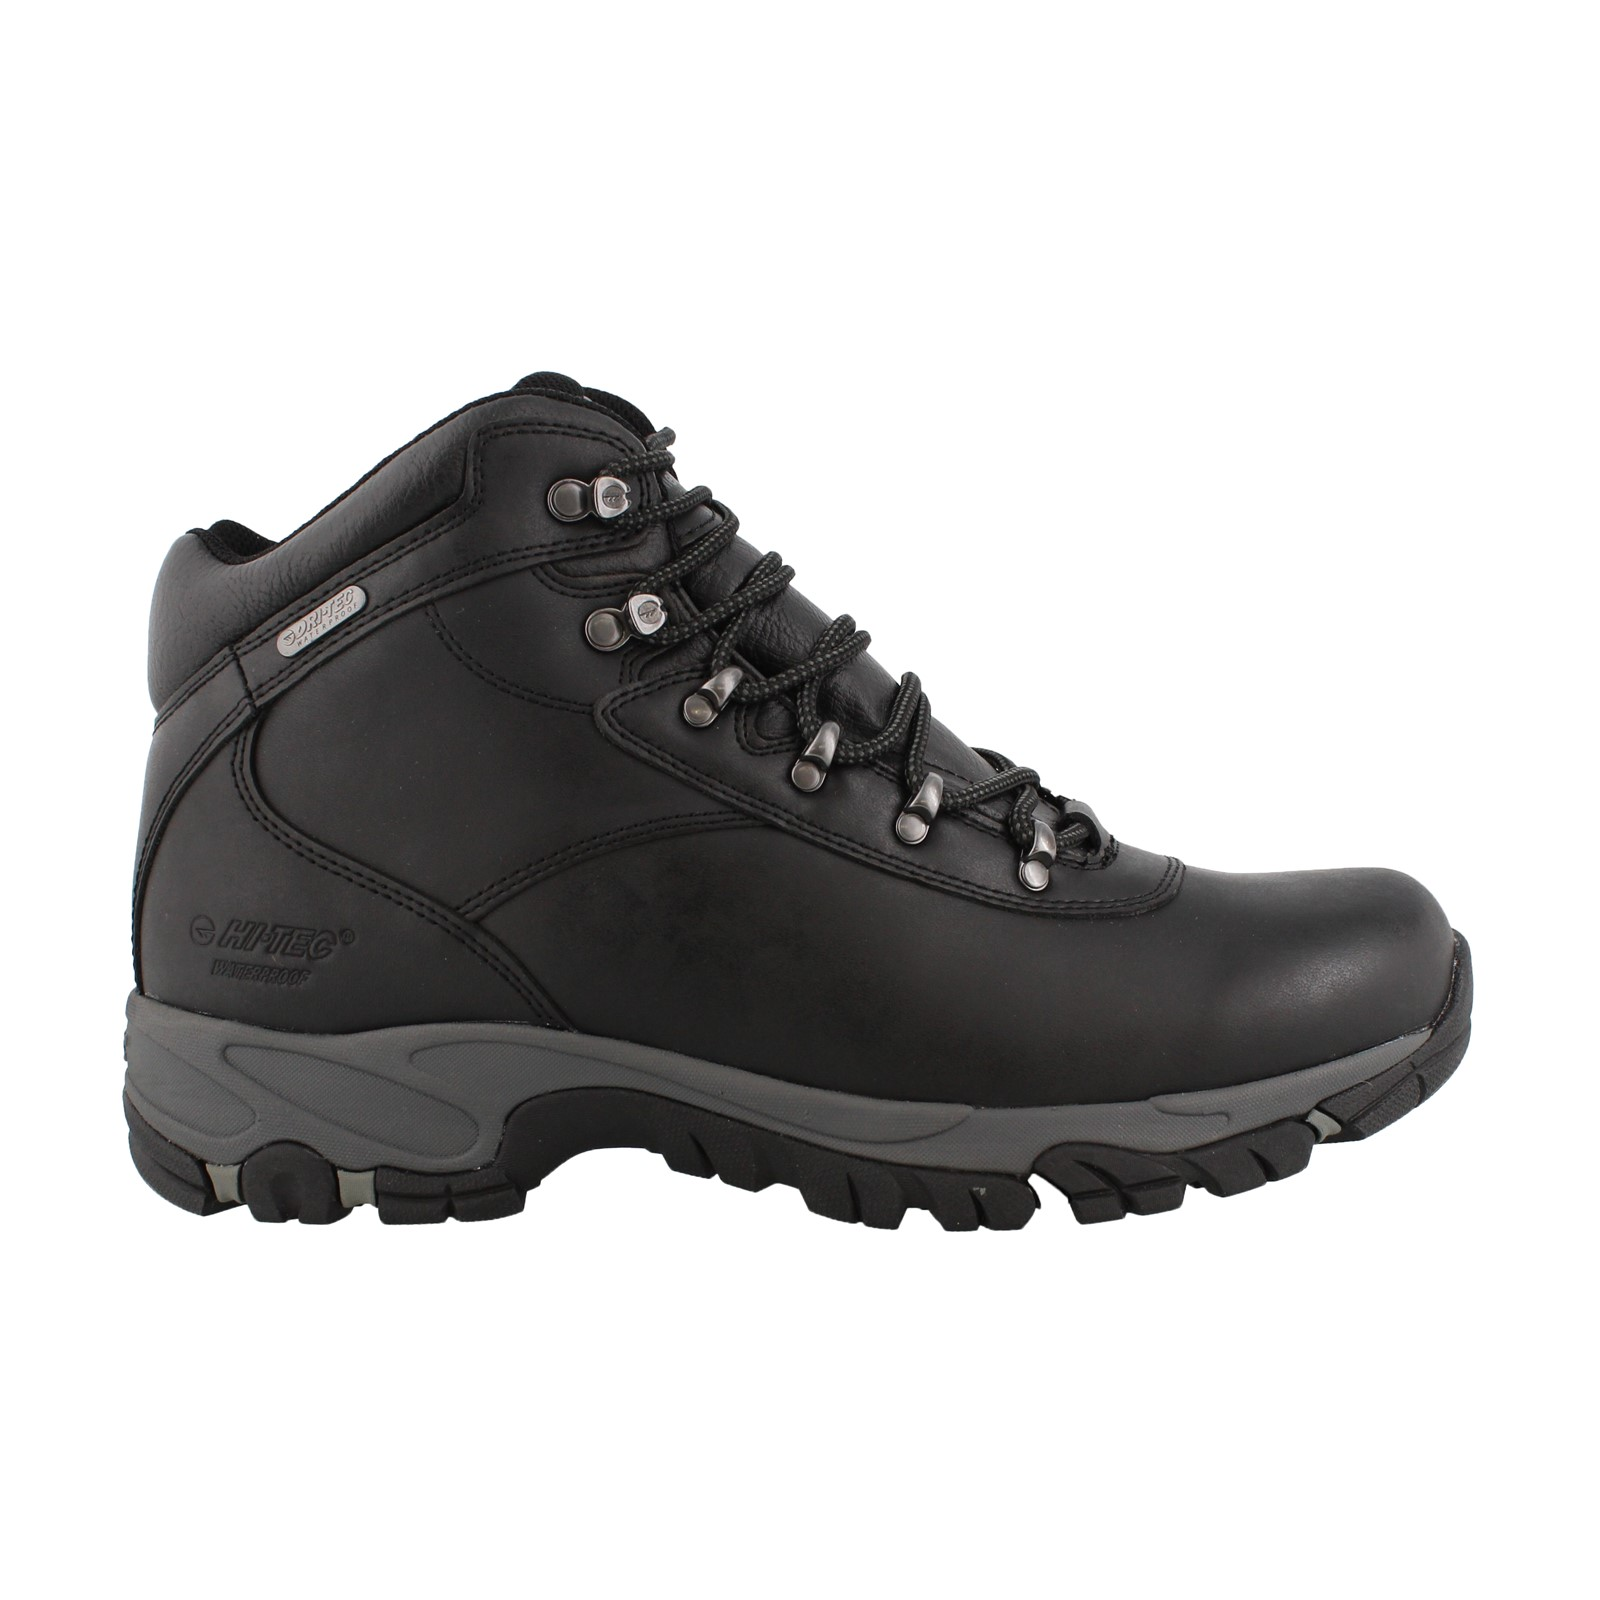 a36df2f6acc Men's Hi Tech, Altitude VI Waterproof Boots Wide Width